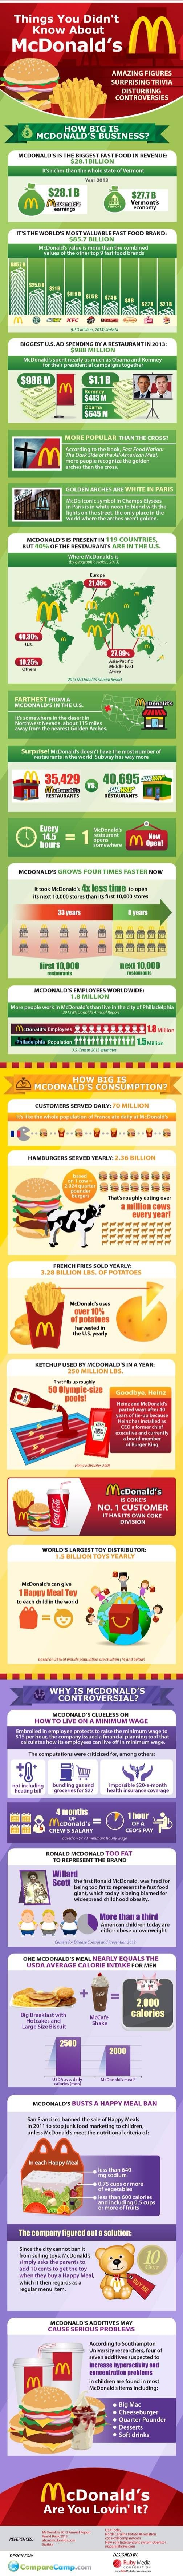 Things you didn't know about #Mcdonalds